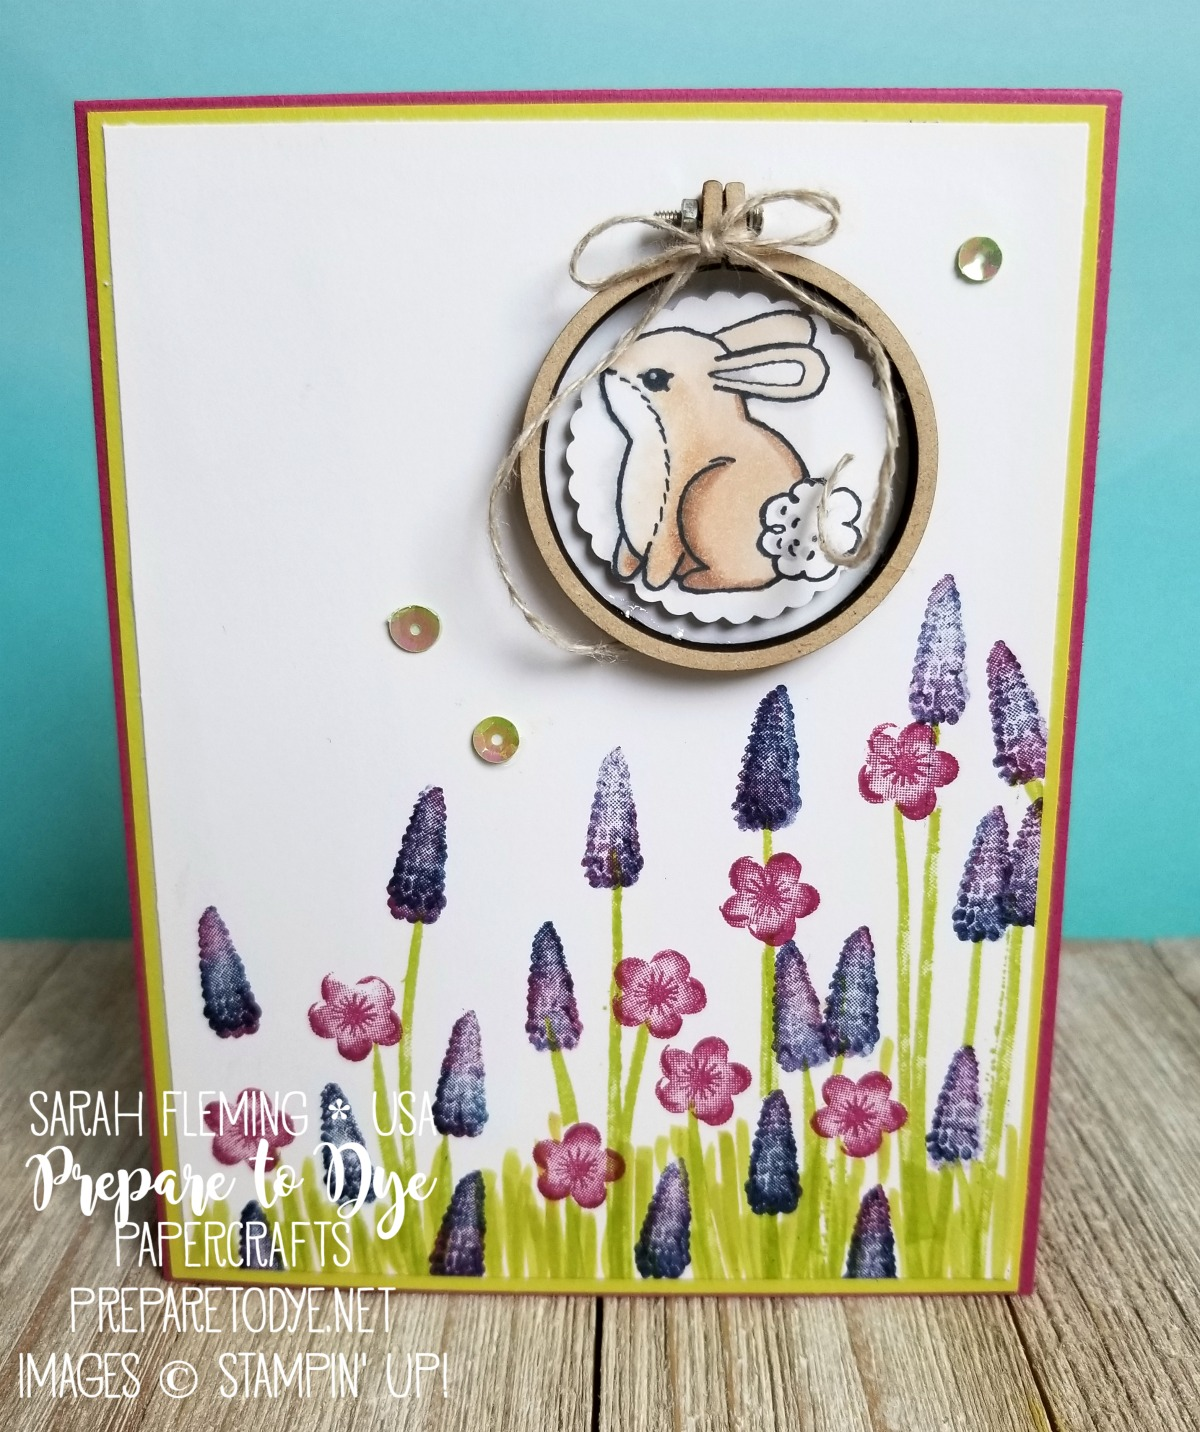 Stampin' Up! handmade Easter card using Garden Girl with Tranquil Tulips, Mini Embroidery Hoops, Stampin' Blends, baby wipe technique, Texas bluebonnets - Sarah Fleming - Prepare to Dye Papercrafts